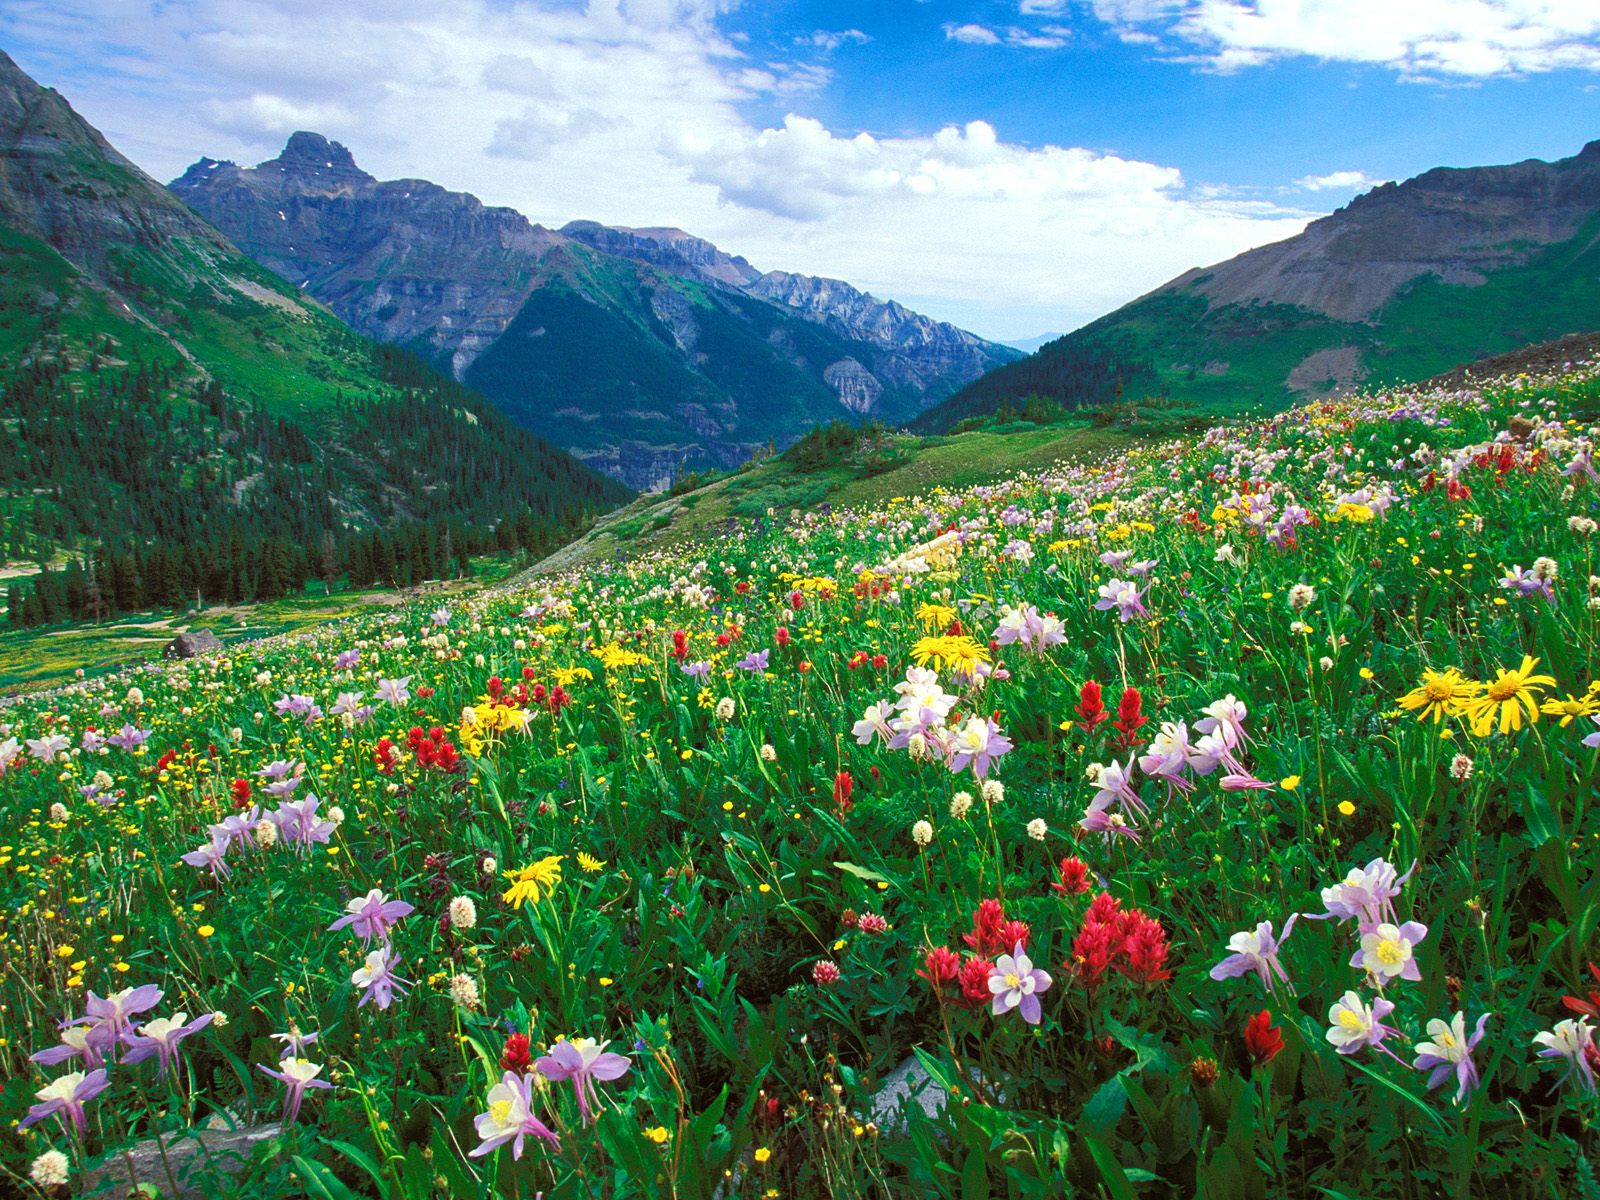 Paintbrush Columbine and Orange Sneezeweed Sneffels Range Colorado